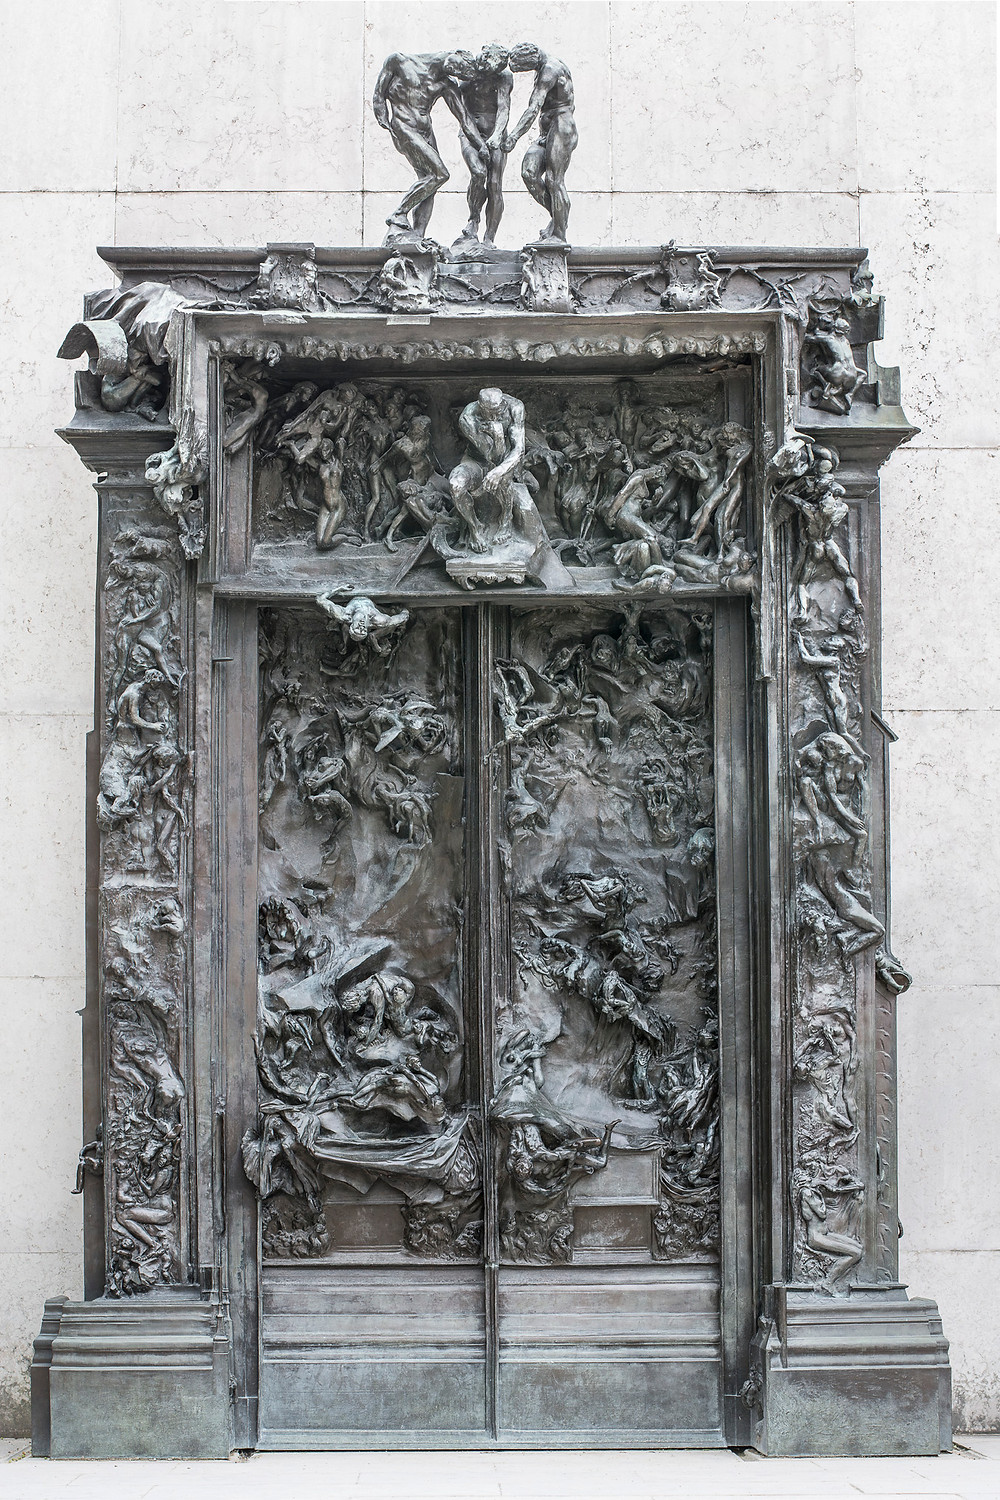 the bronze version of The Gates of Hell, in the Rodin Museum sculptural  garden